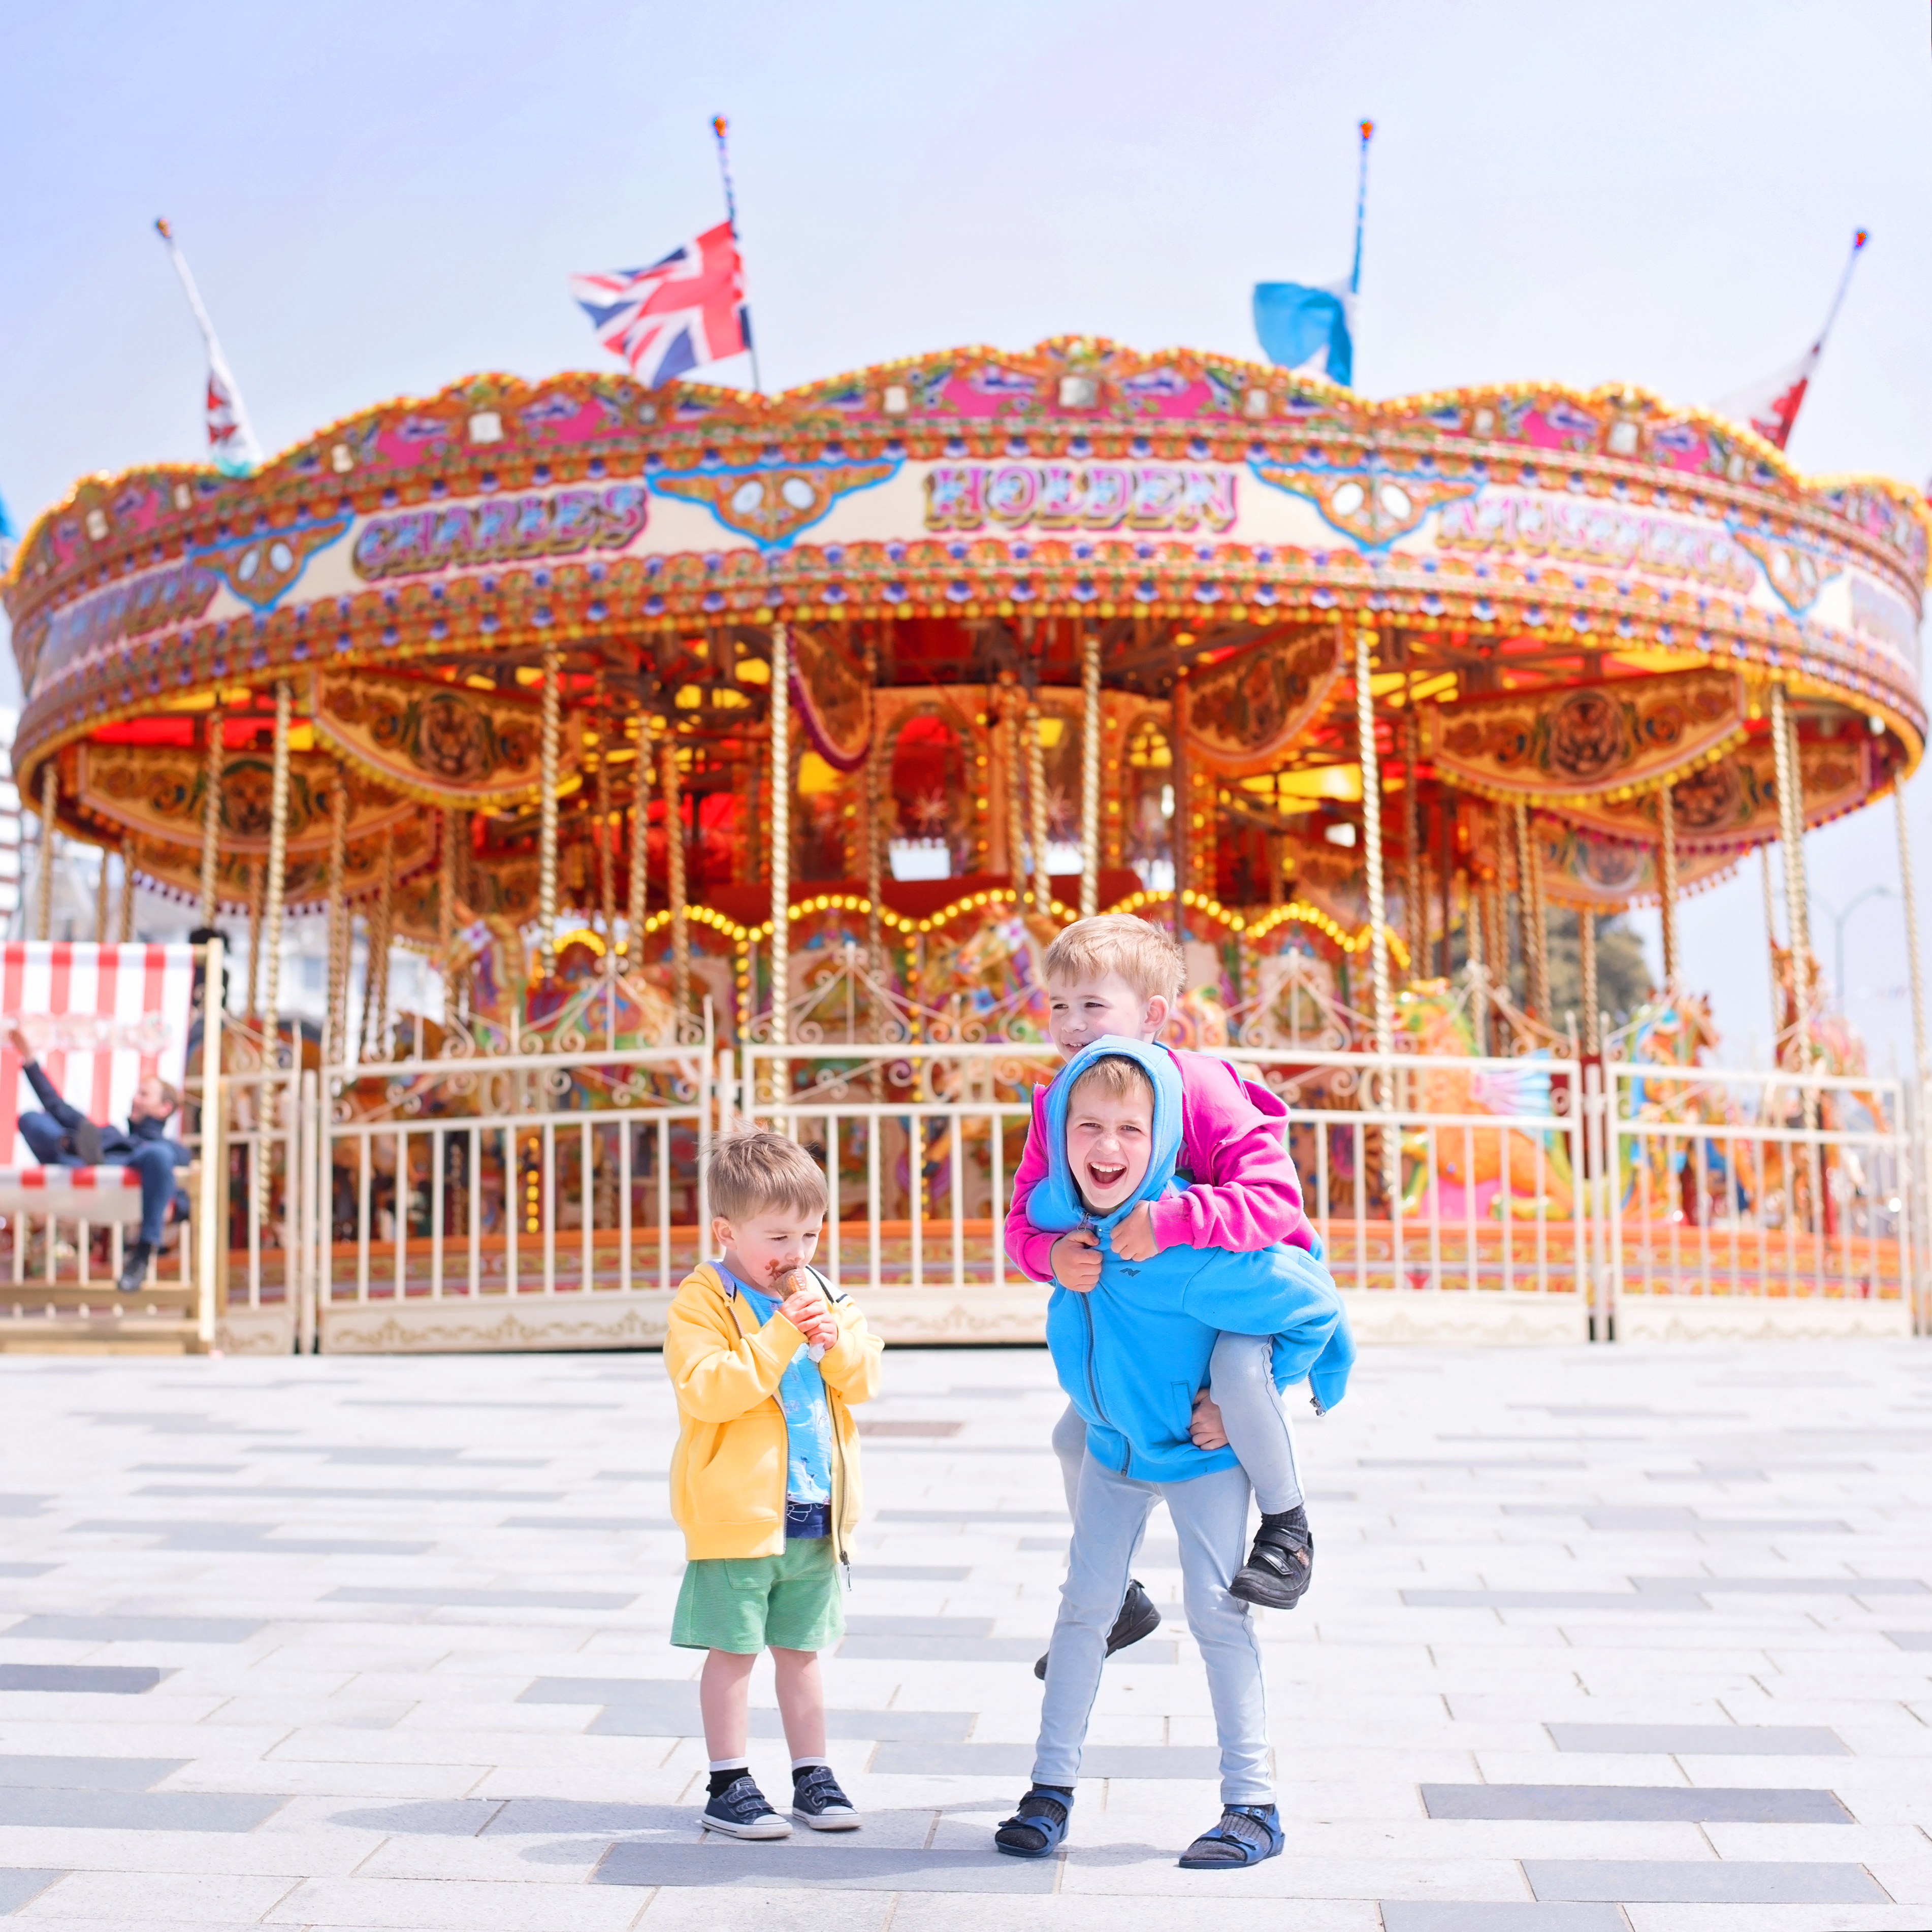 SUMMER HOLIDAY WEEKENDS: BOURNEMOUTH BEACH